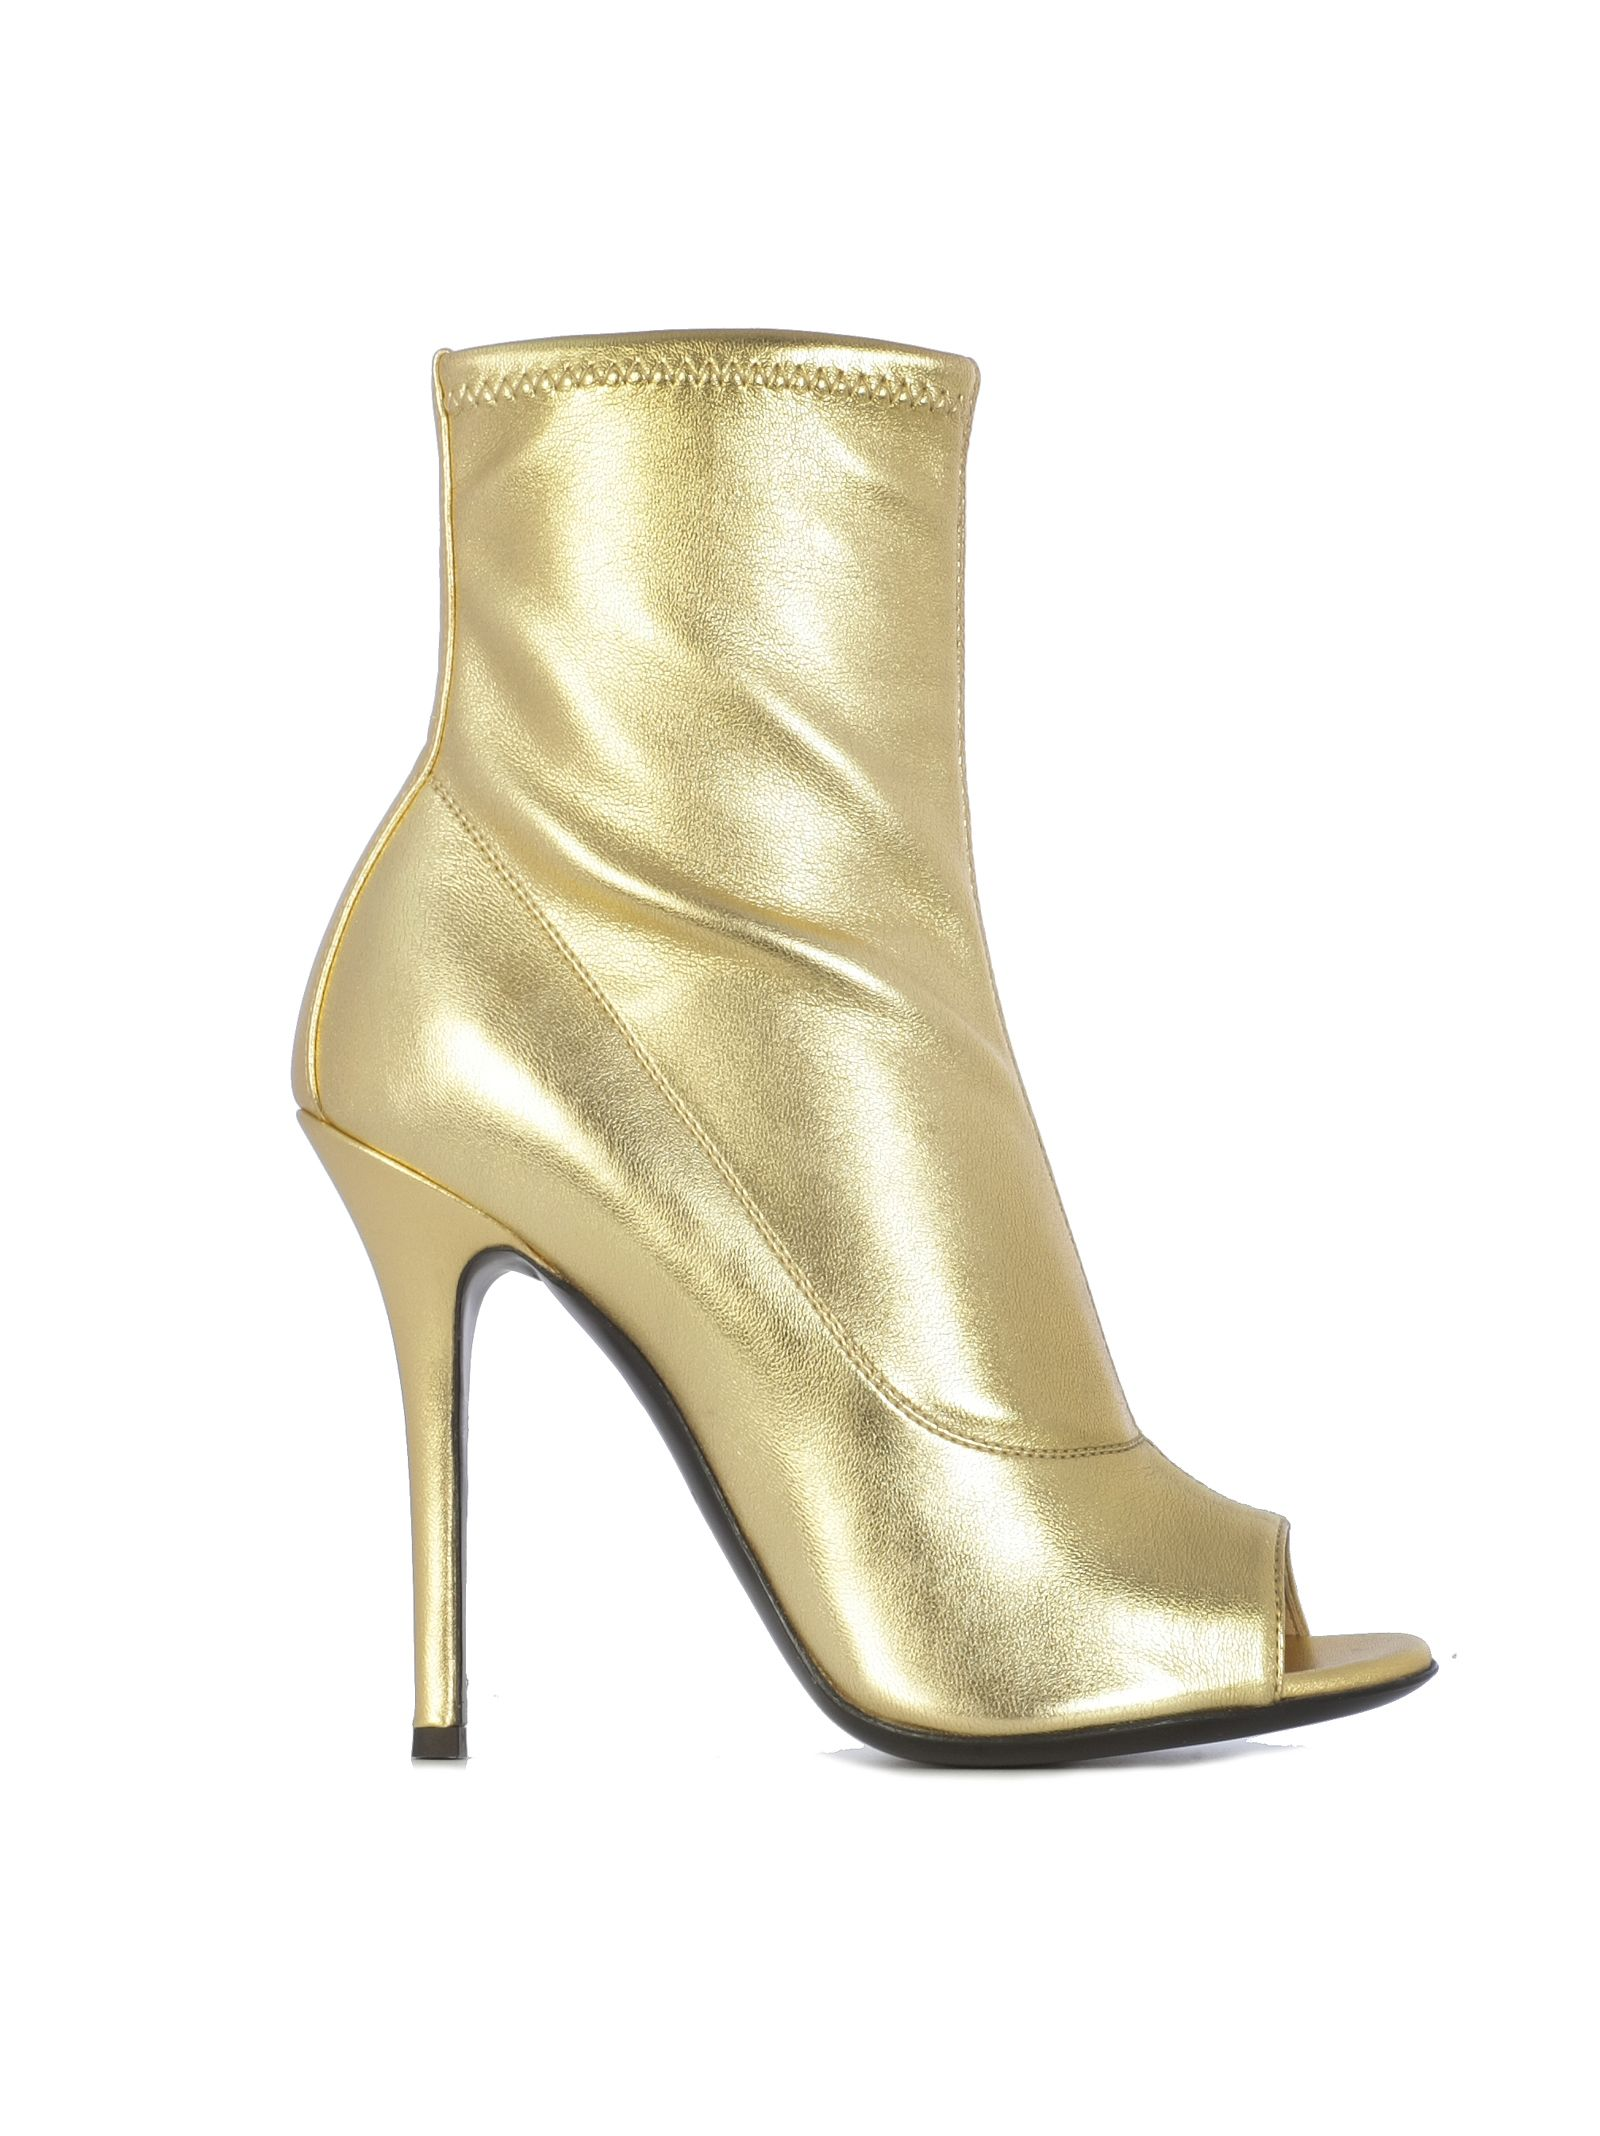 Design Tisha Ankle Boots in Cgold